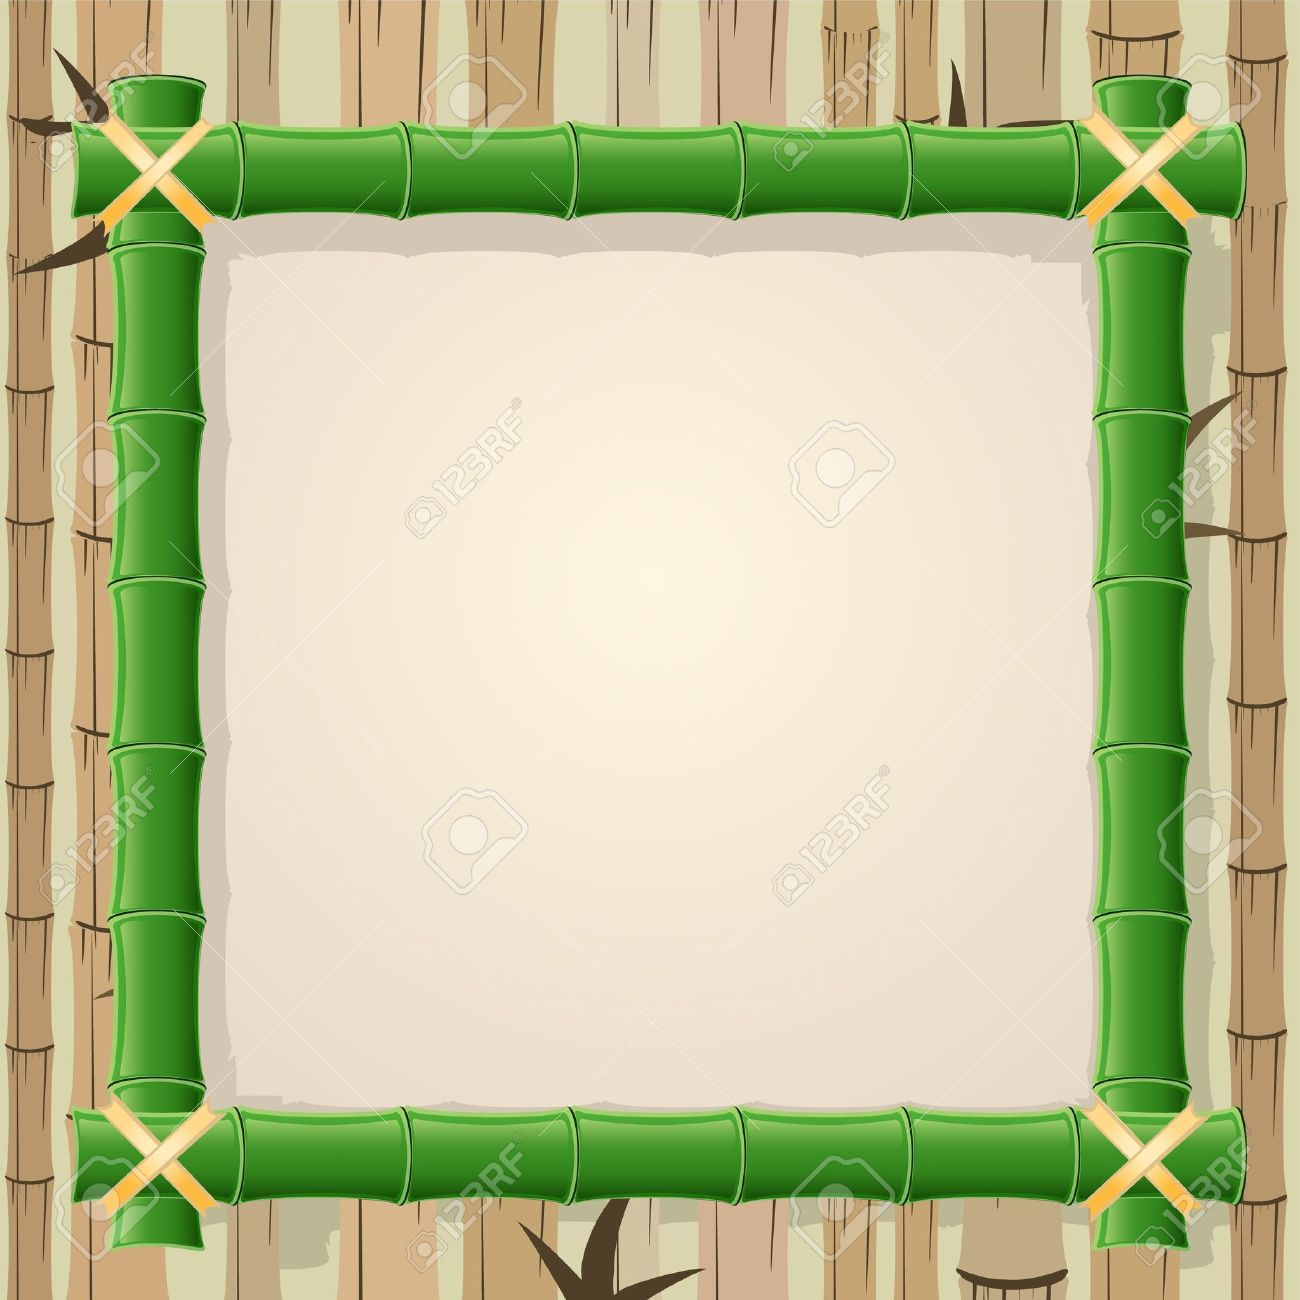 Free color clipart japanese frame borders.